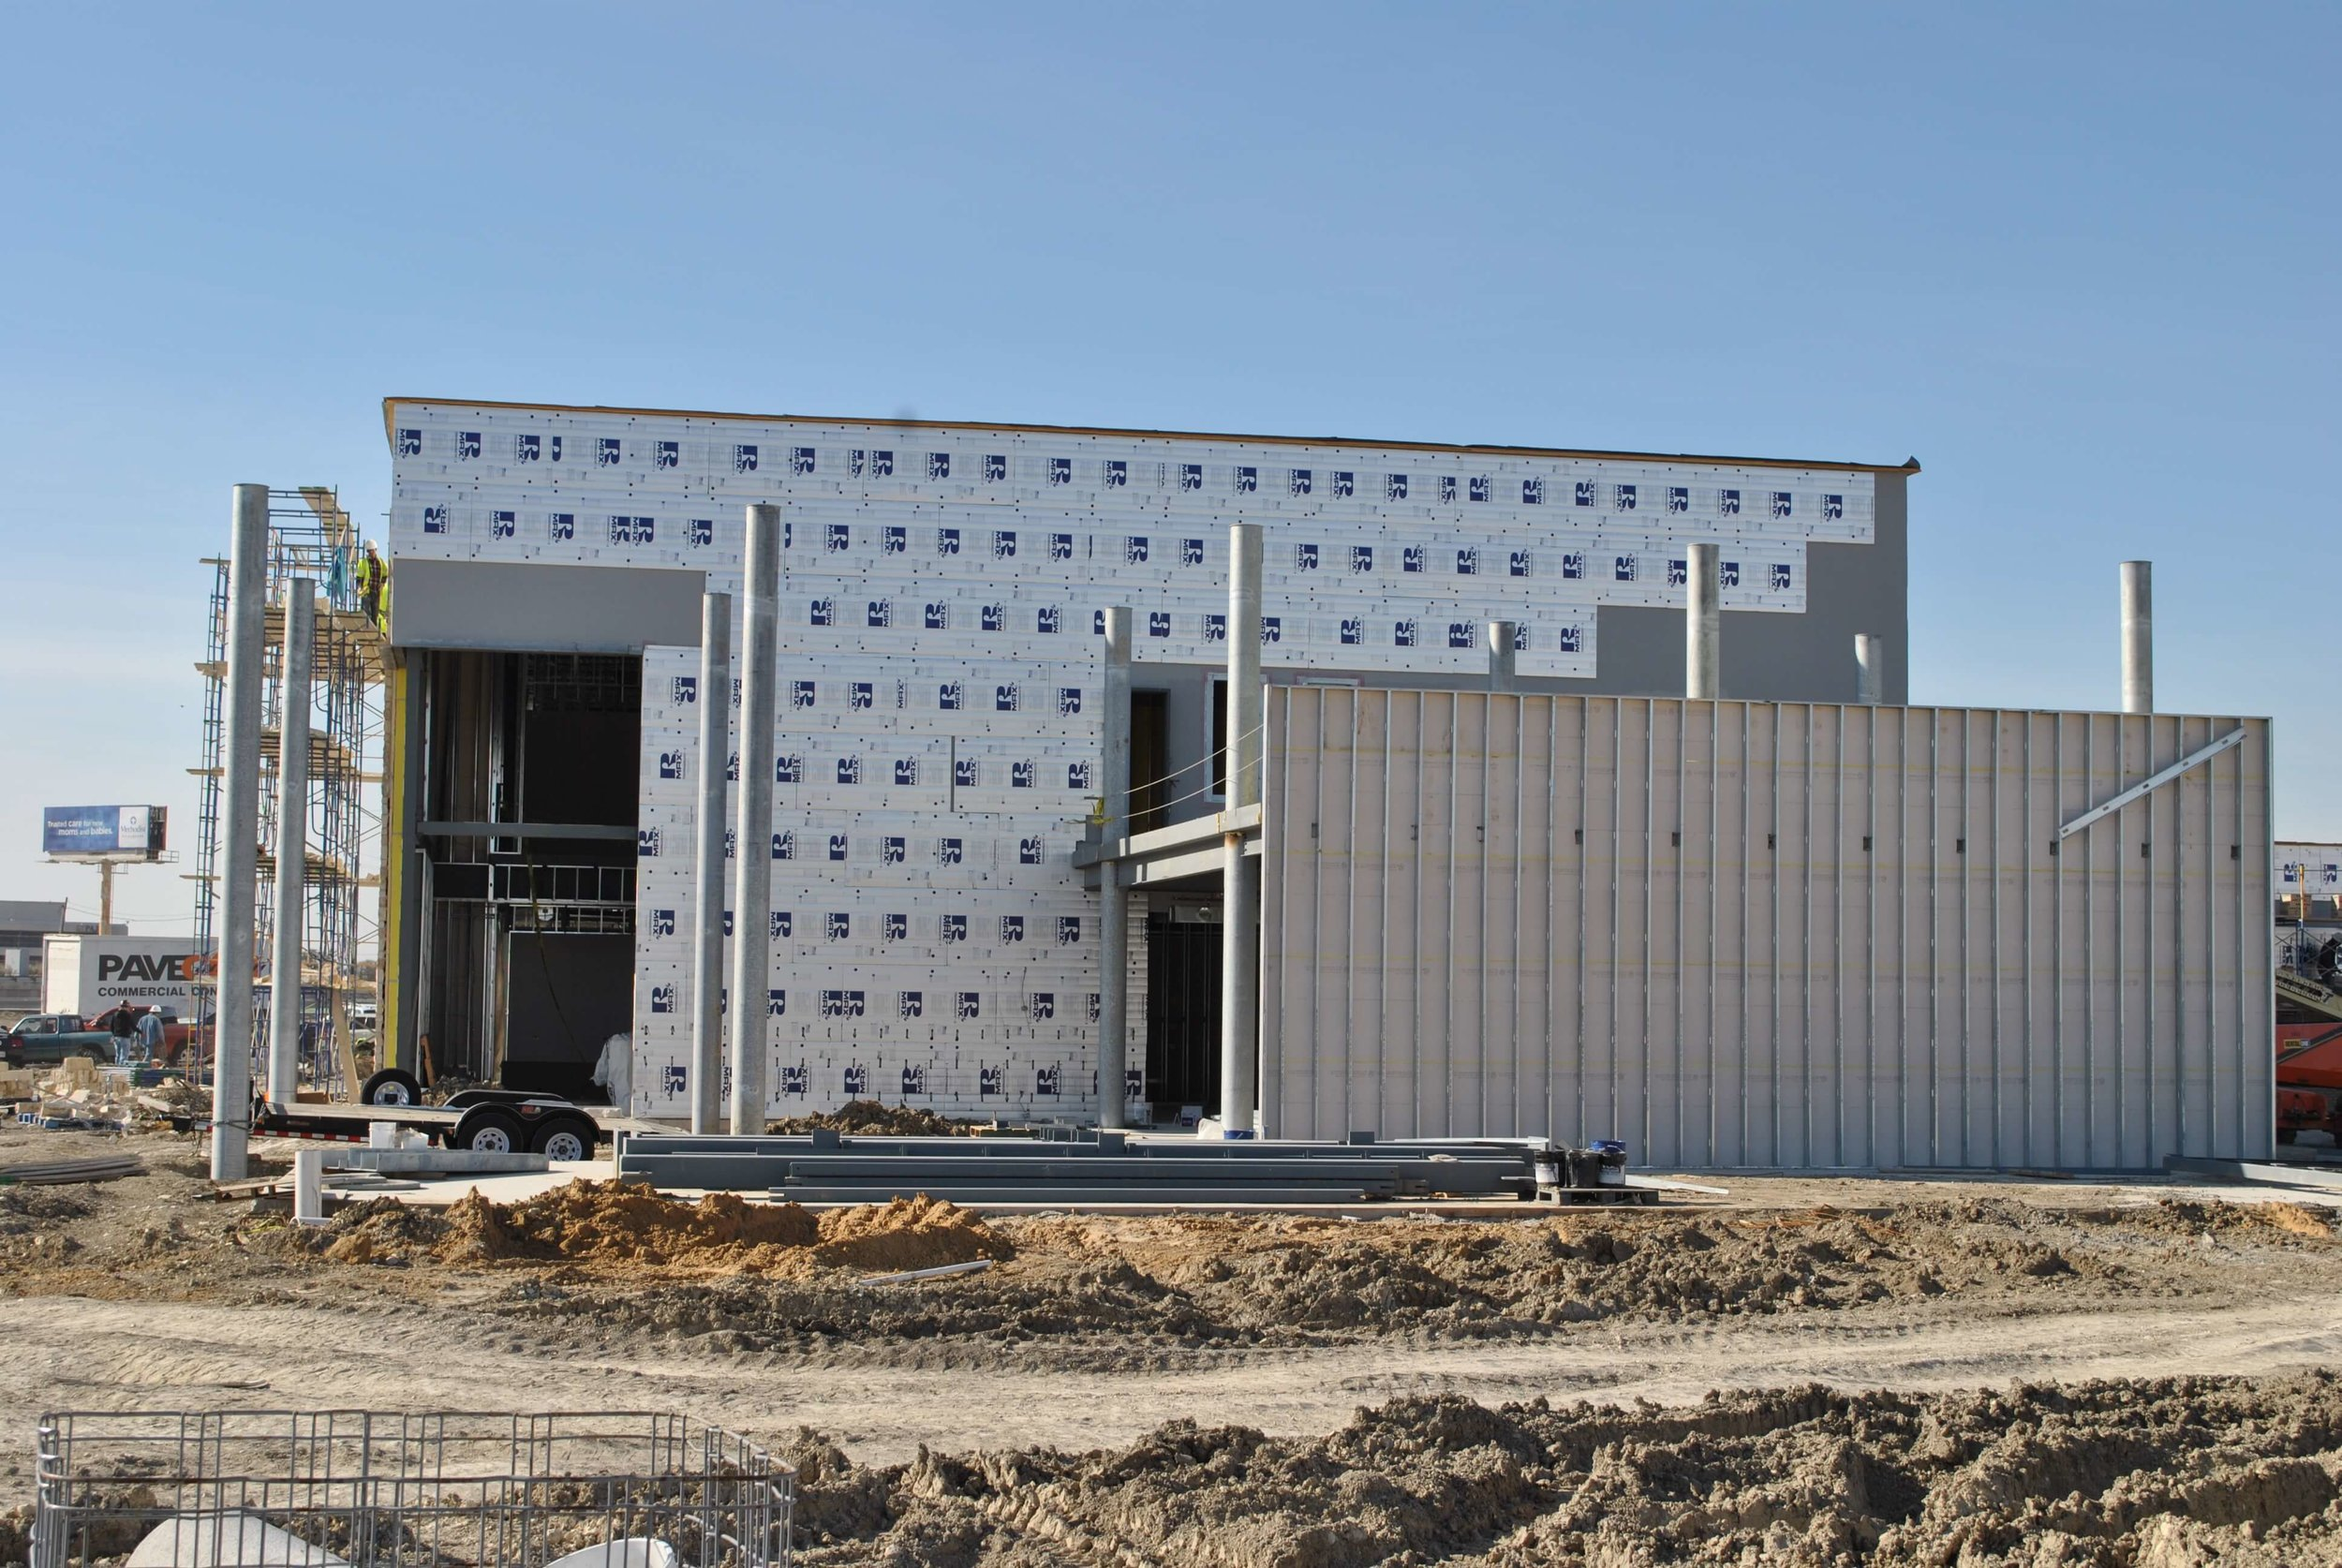 Rmax Thermasheath-3-My Possibilities-Plano, TX Project Image 6.JPG